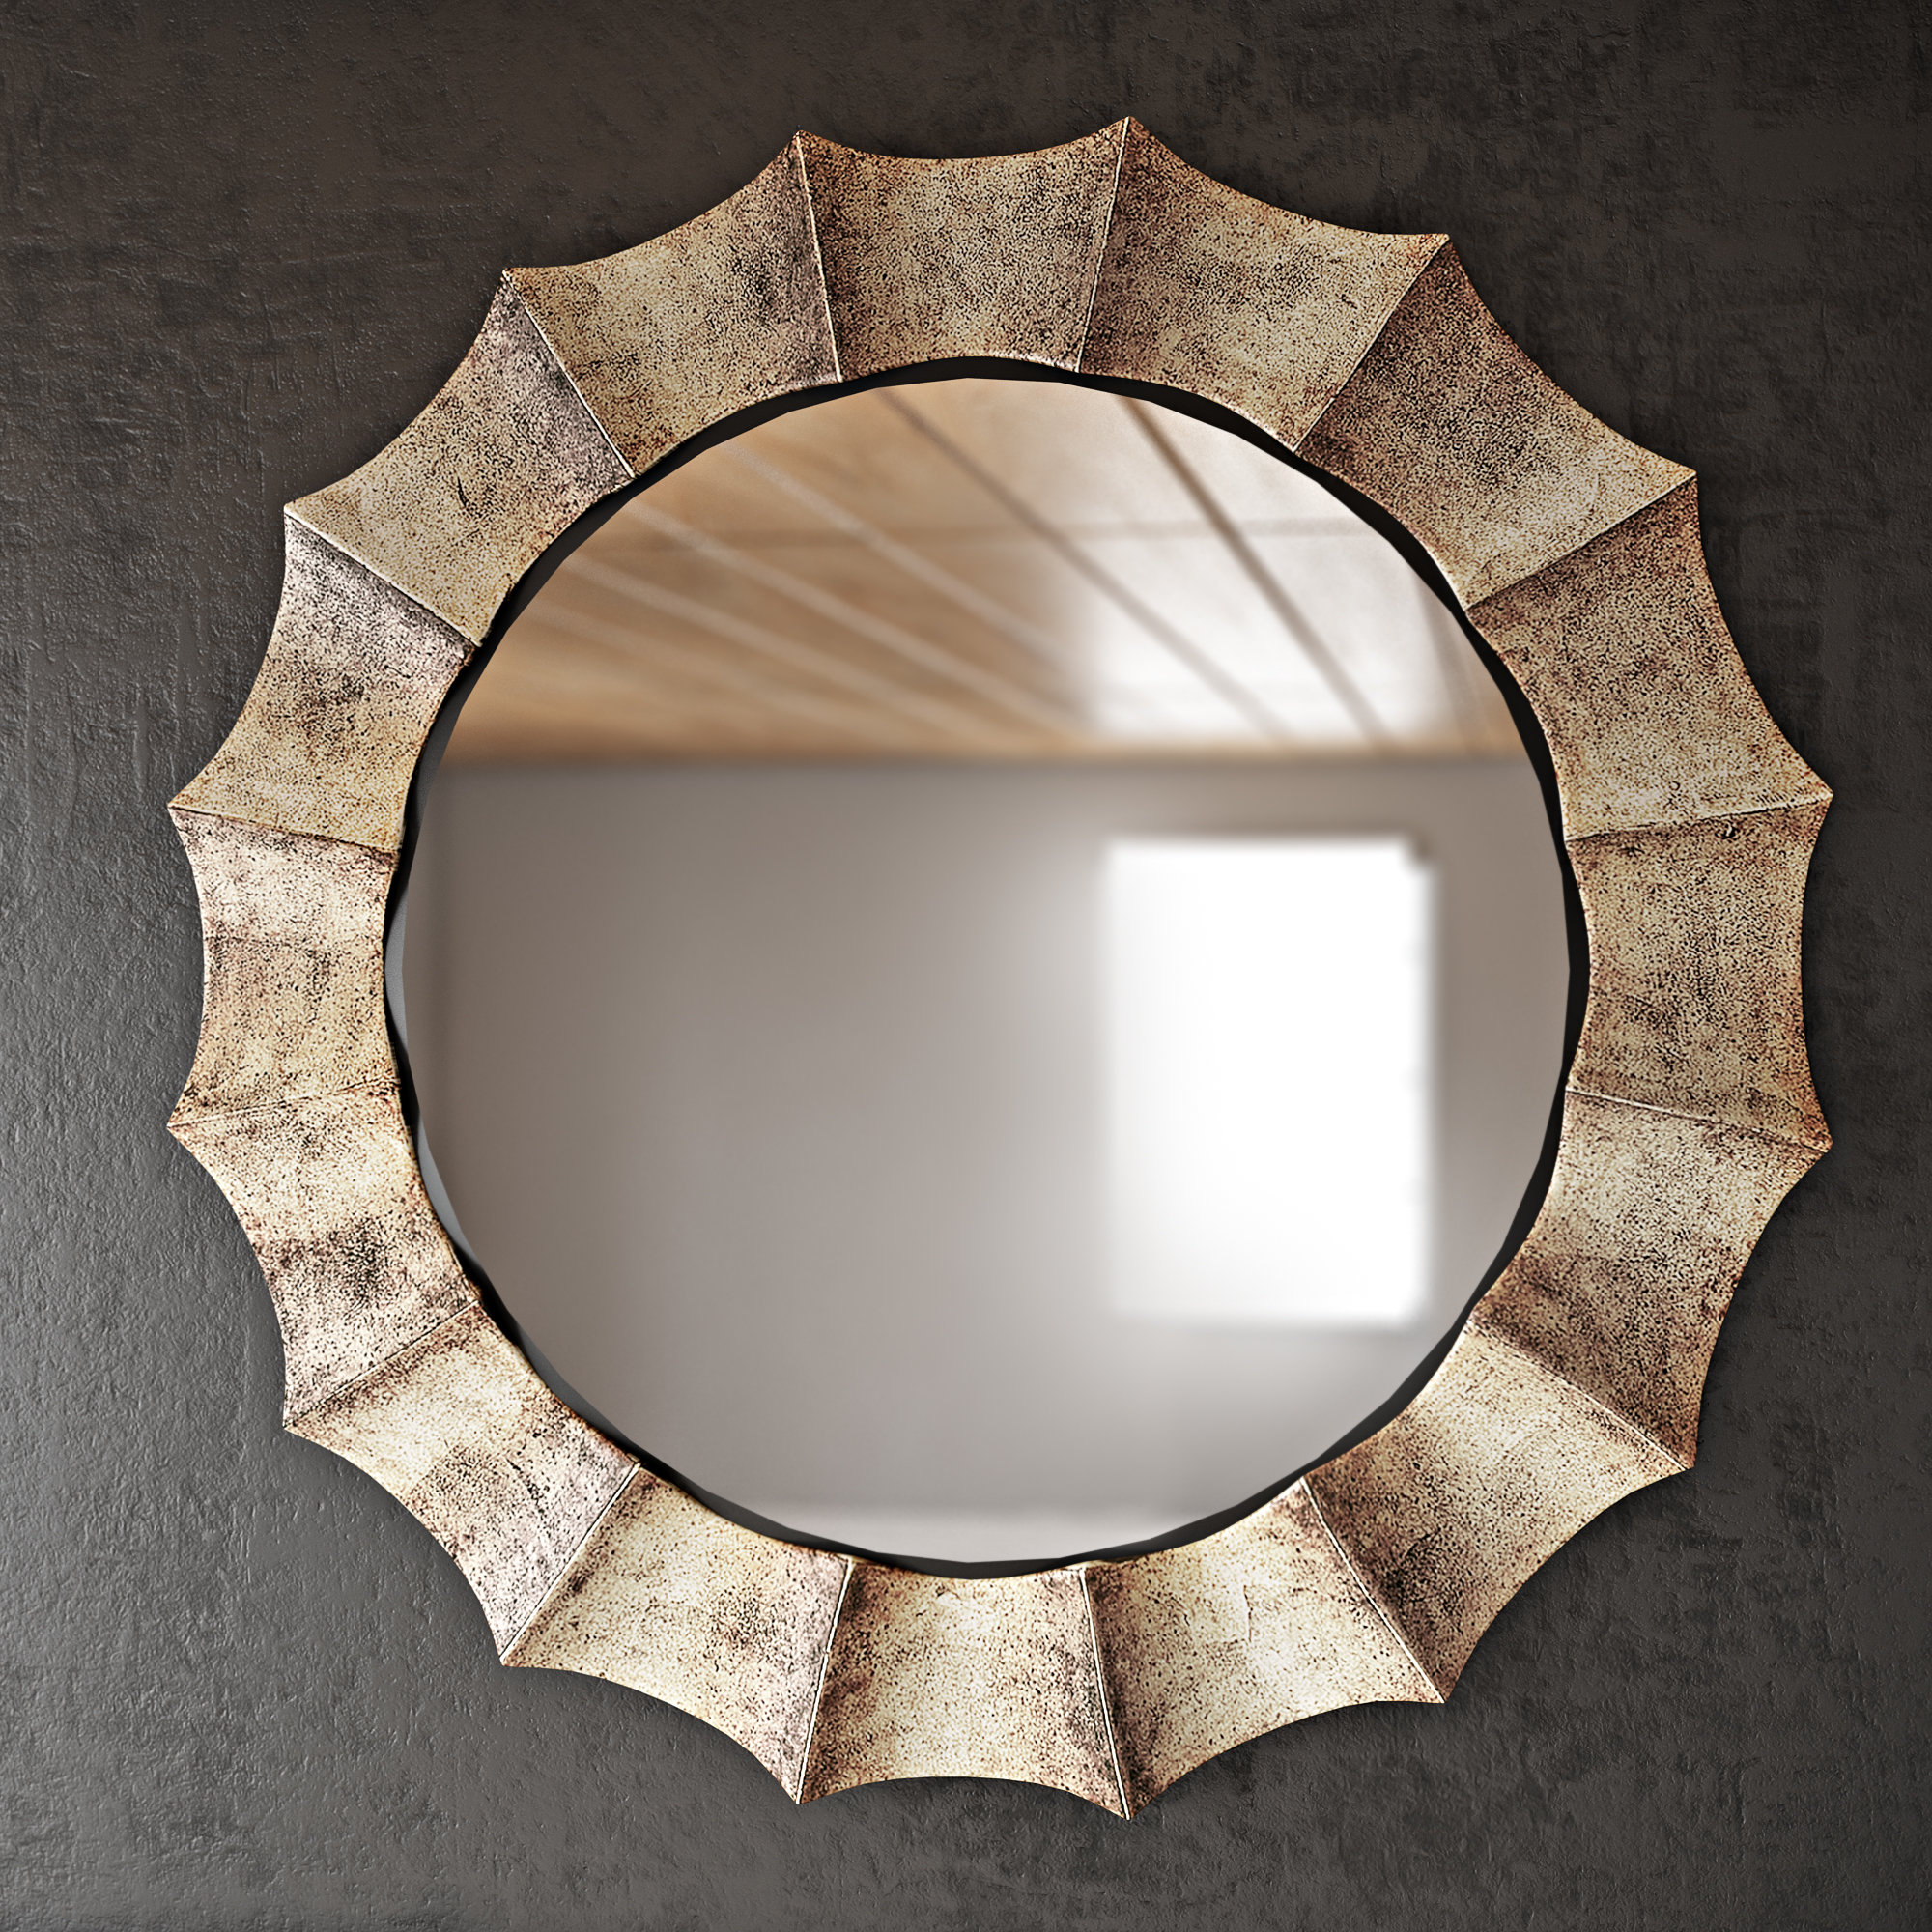 Trent Austin Design Manuel Vertical Round Wall Mirror Throughout Vertical Round Wall Mirrors (Image 16 of 20)